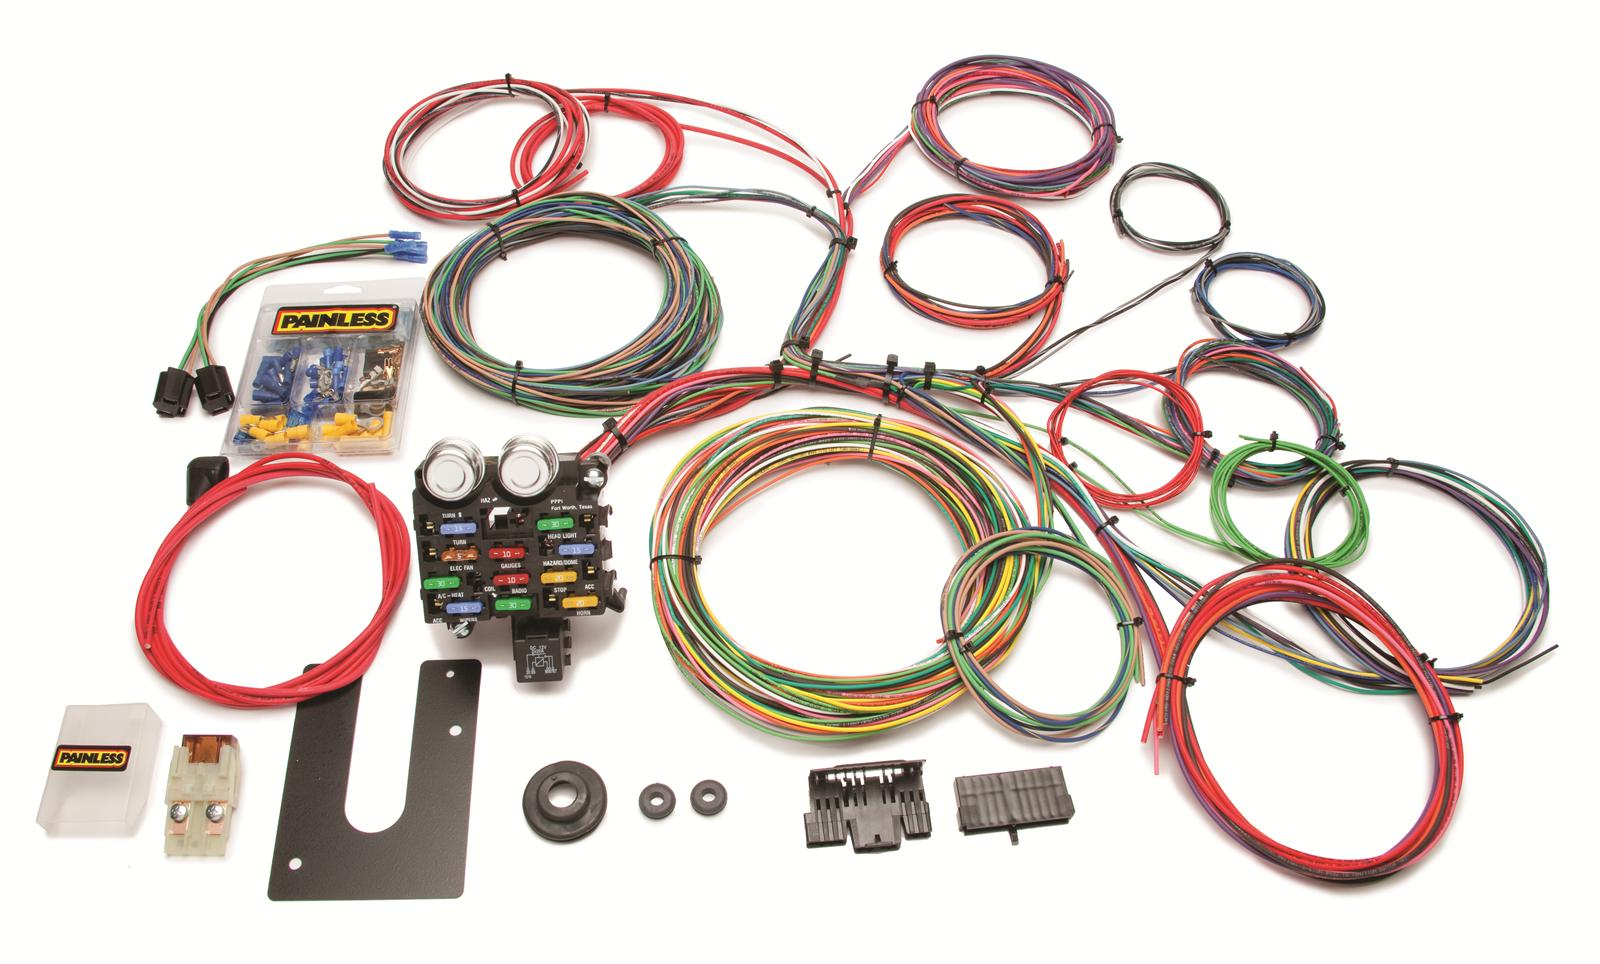 prf 10102_xl painless performance 21 circuit universal harnesses 10102 free universal wiring harness australia at webbmarketing.co